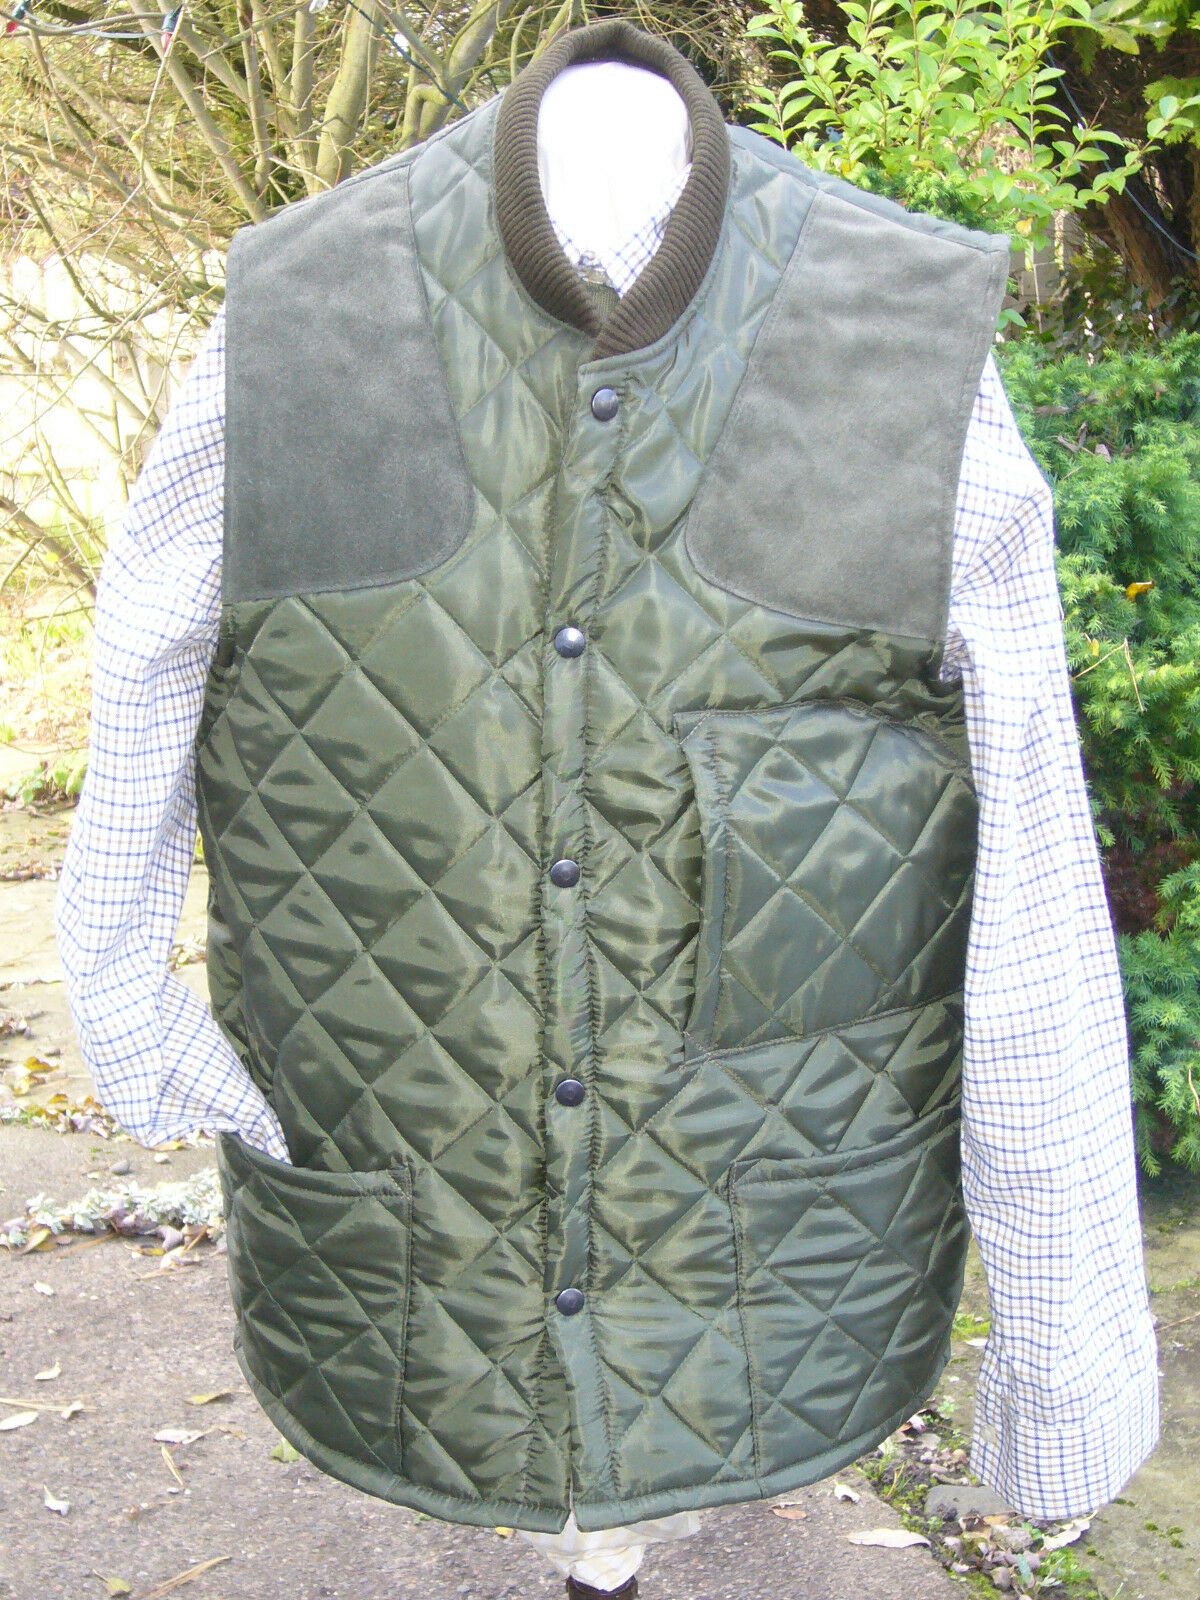 SHOOTING VEST QUILTED GrößeS S-XXXL CLAYS SHOOTING HUNTING OLIVE NEW